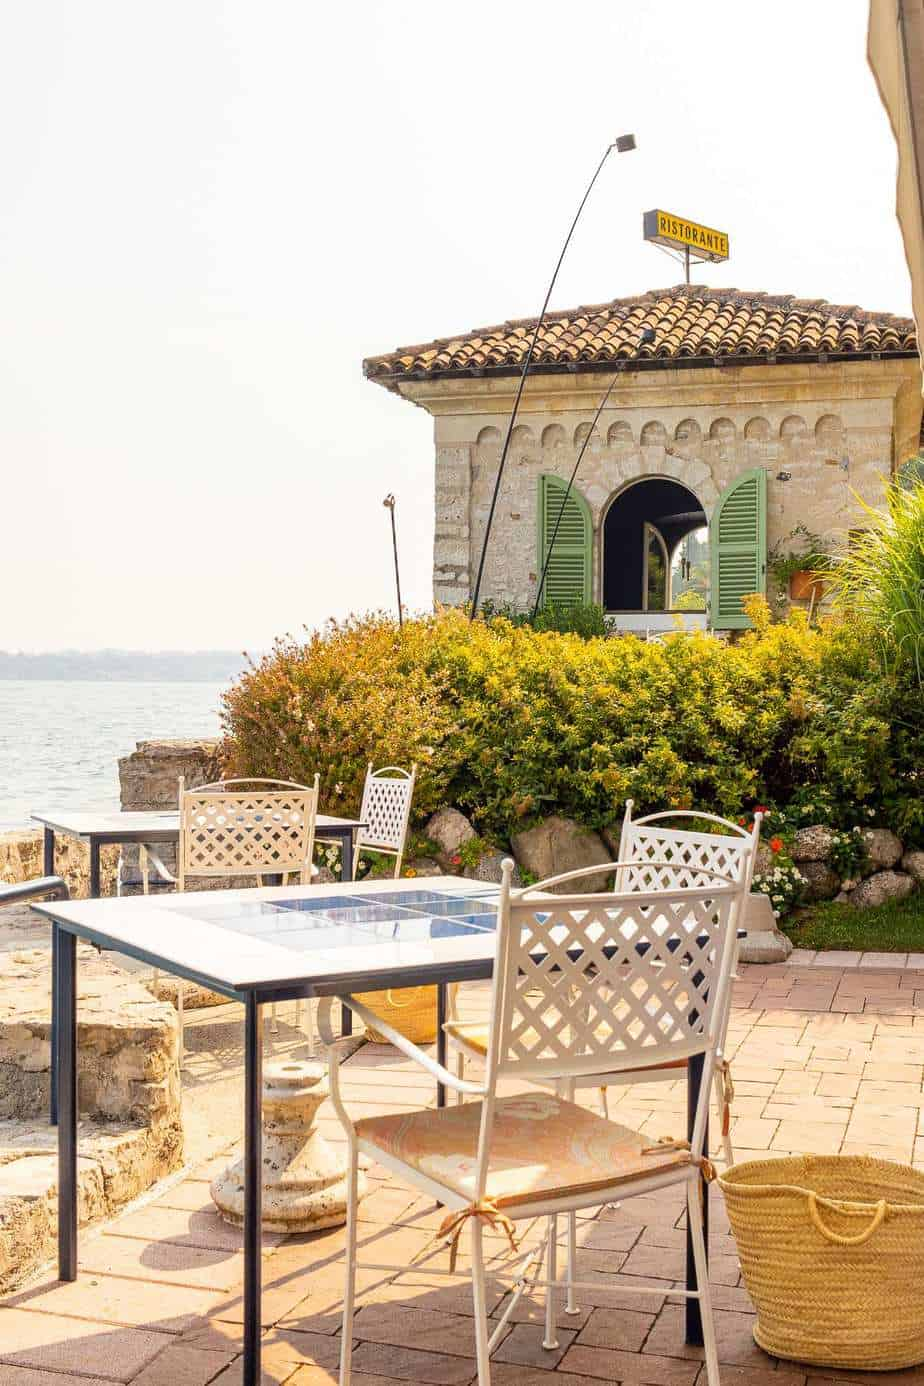 Ristorante Lido 84 Tower Private Dining and Outside Alfresco Dining Area